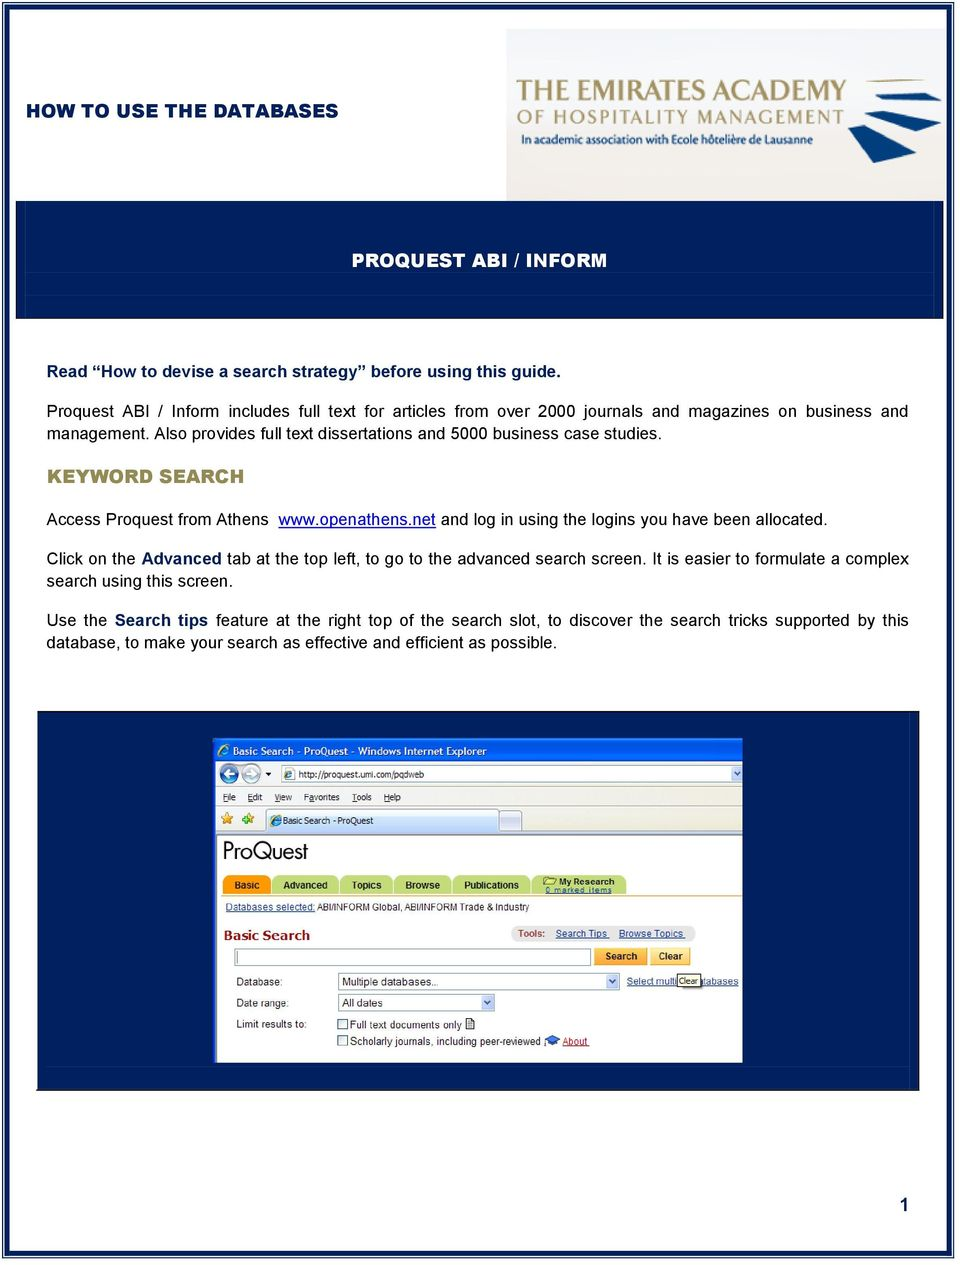 proquest digital dissertations full text Acm digital library librarylit full text local market audience analyst pqd open (freely available dissertations from proquest) proquest.